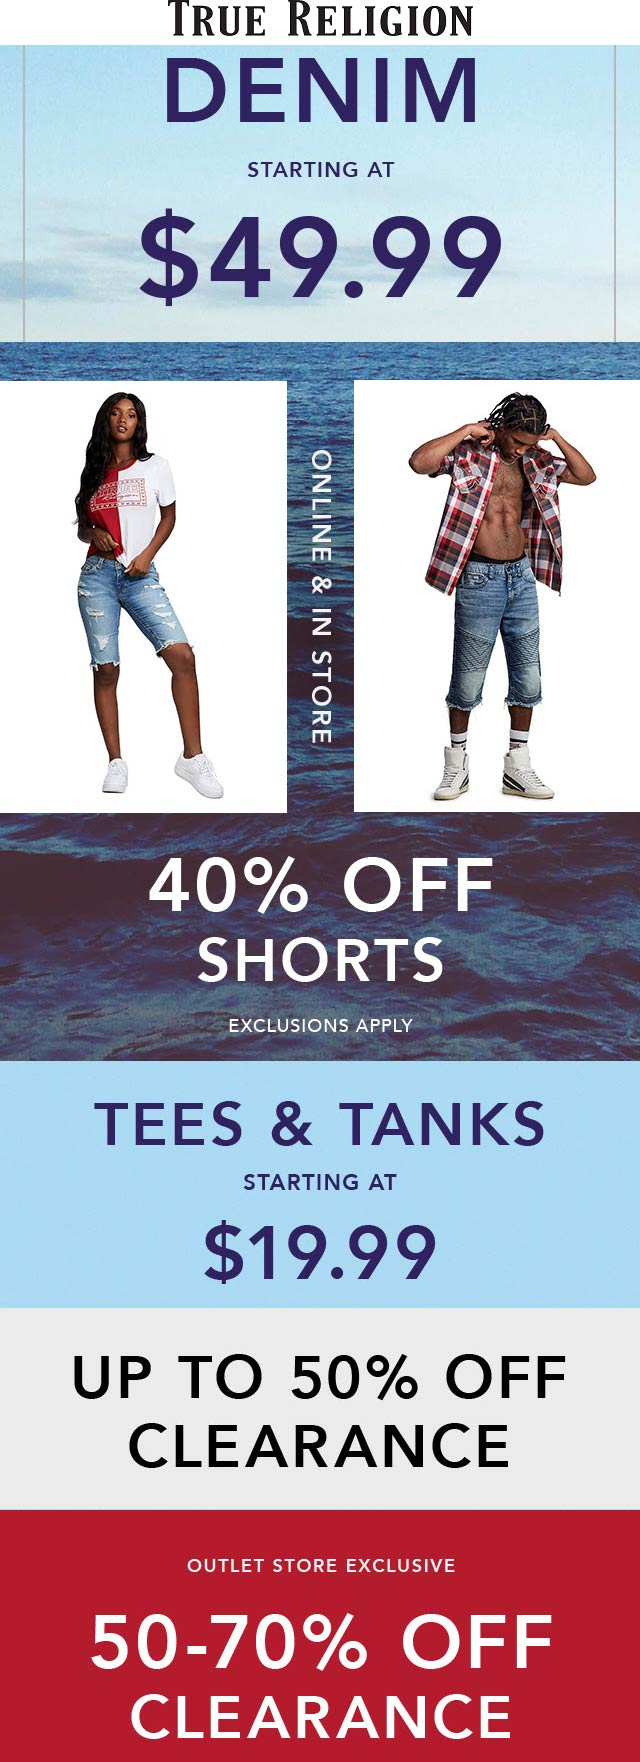 True Religion Coupon July 2019 40% off shorts at True Religion, ditto online